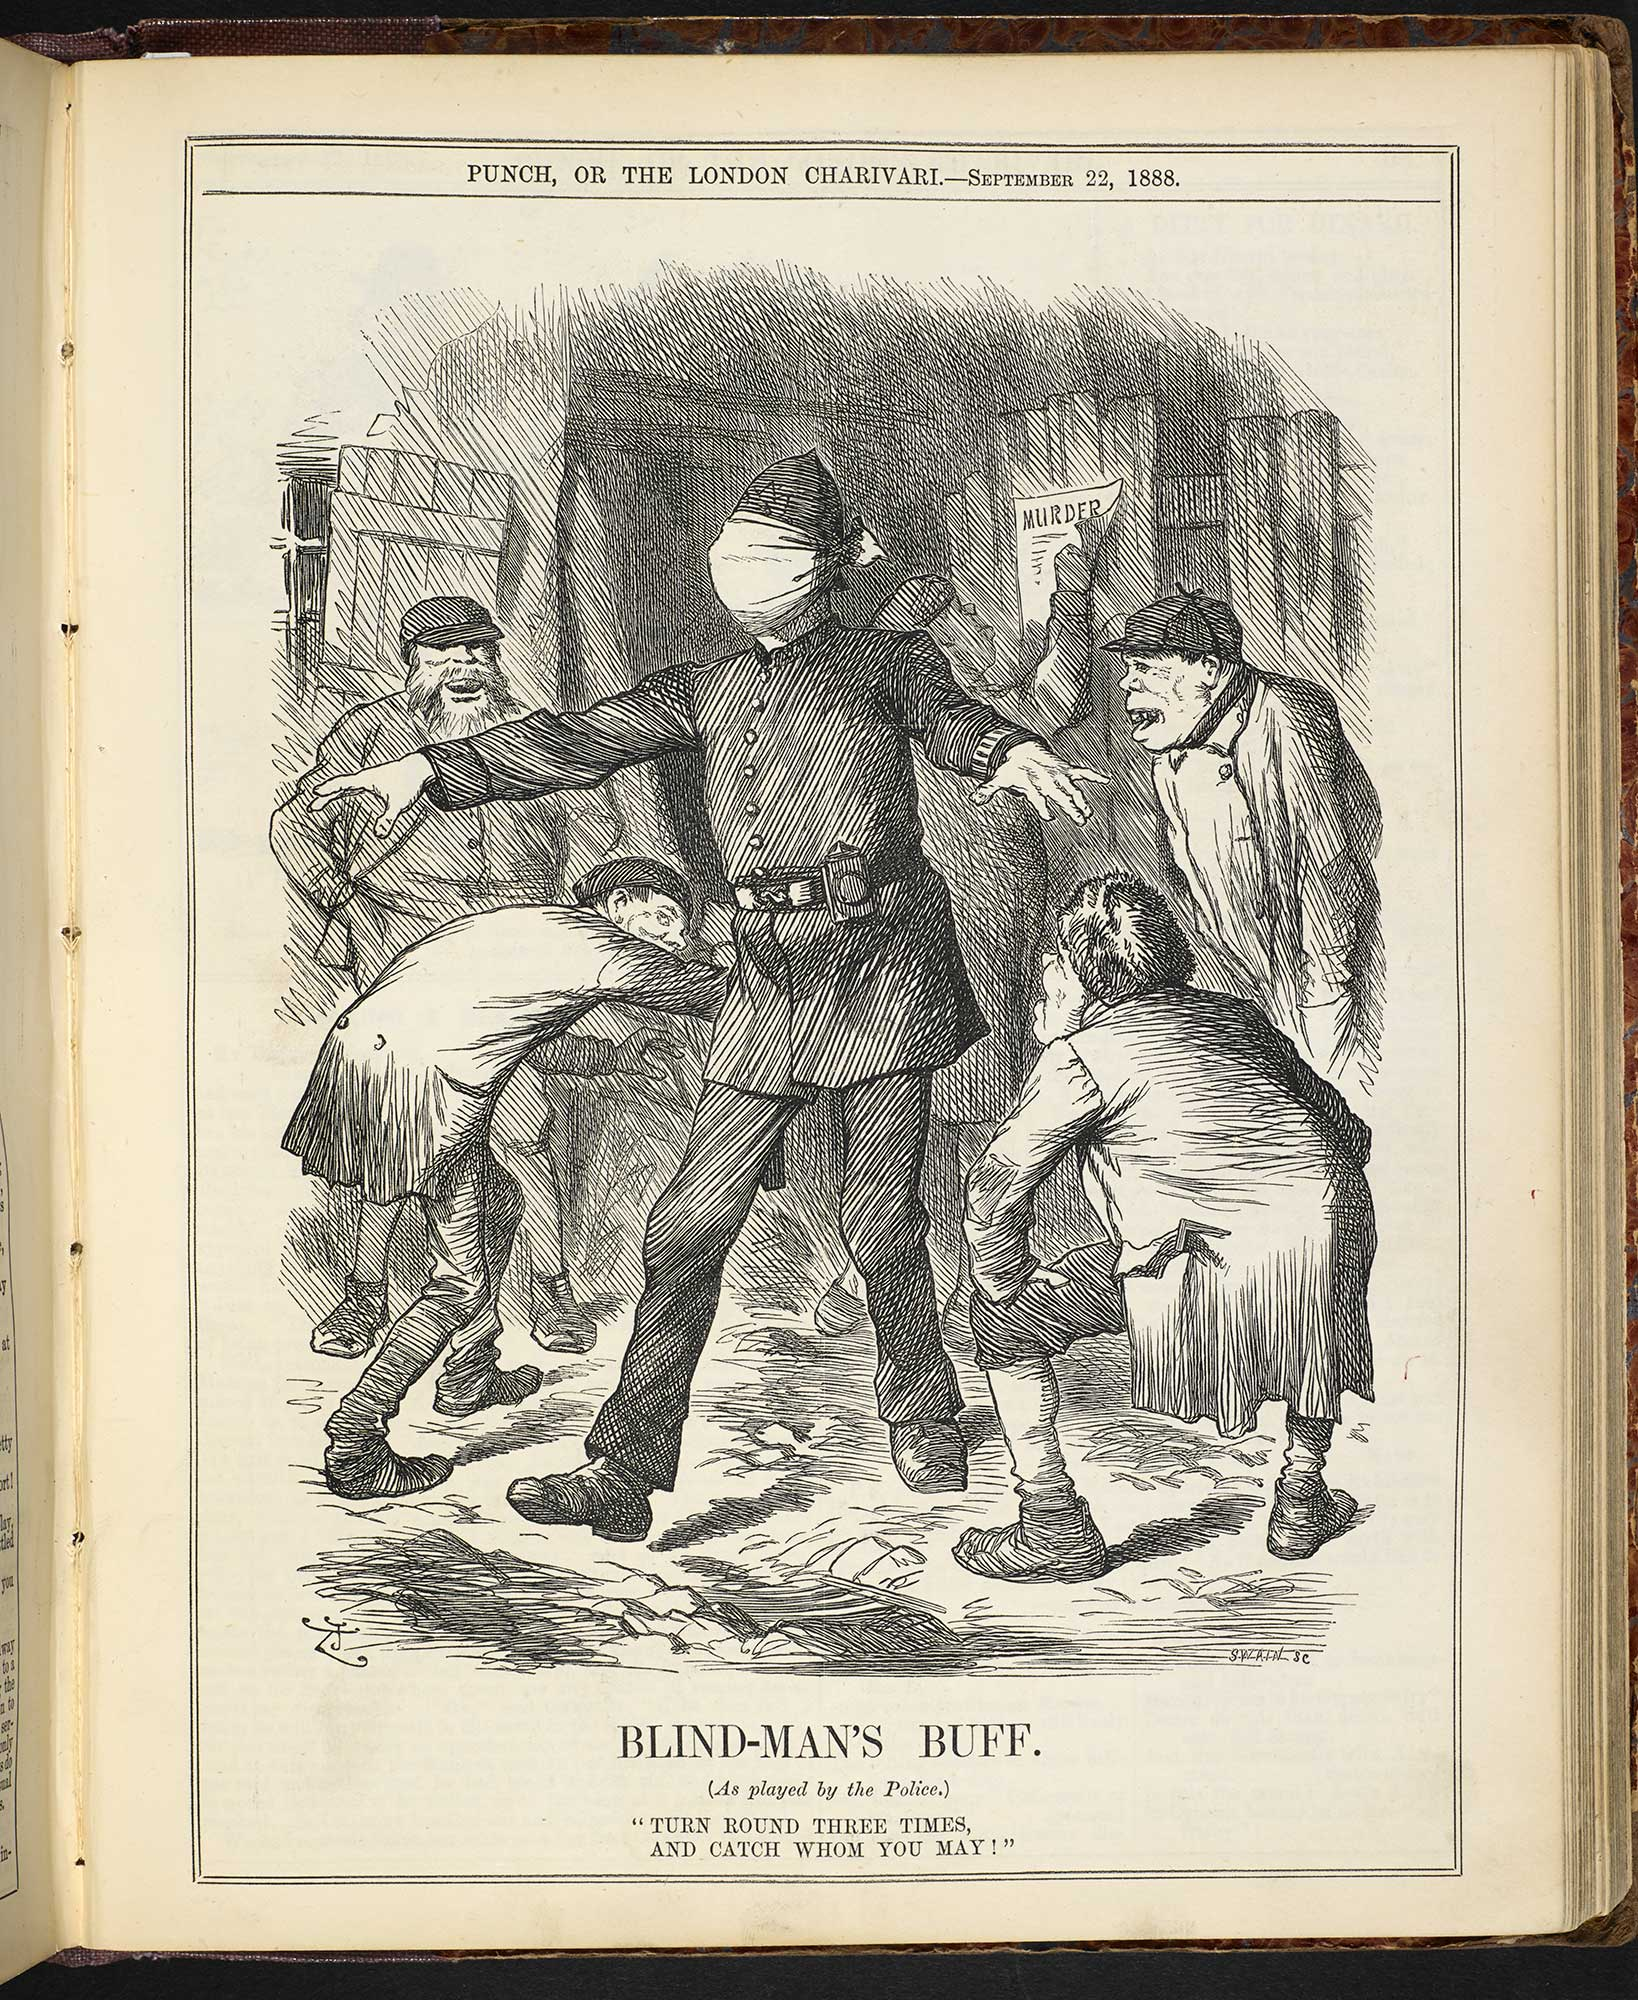 Blind-man's buff' from Punch [page: 139]